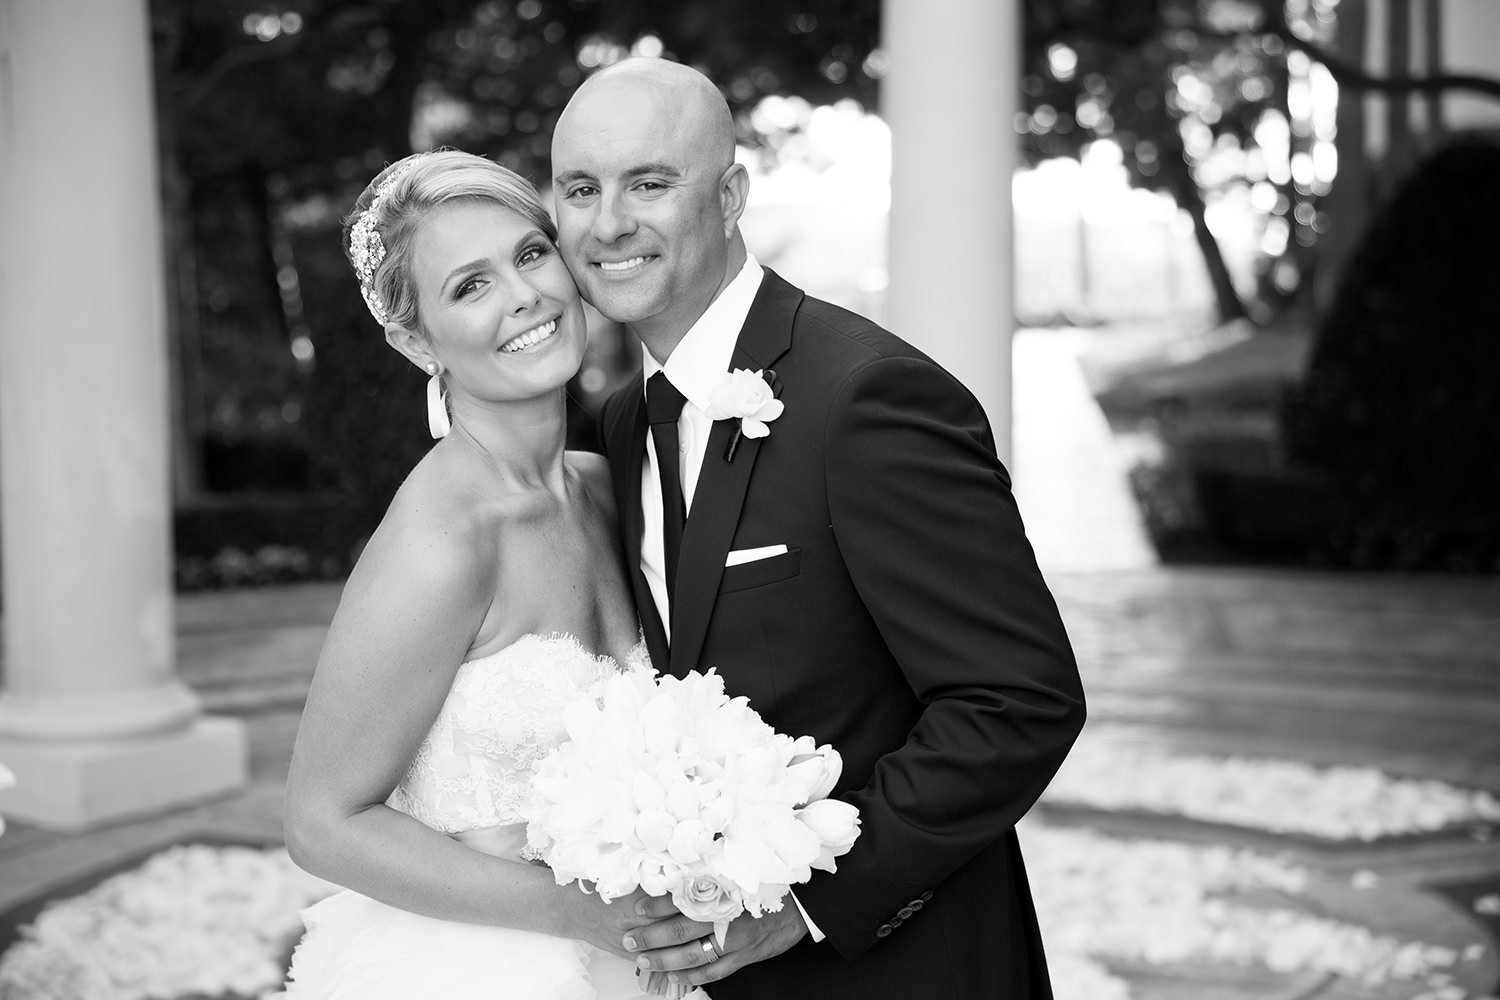 Bride and groom in a classic black and white